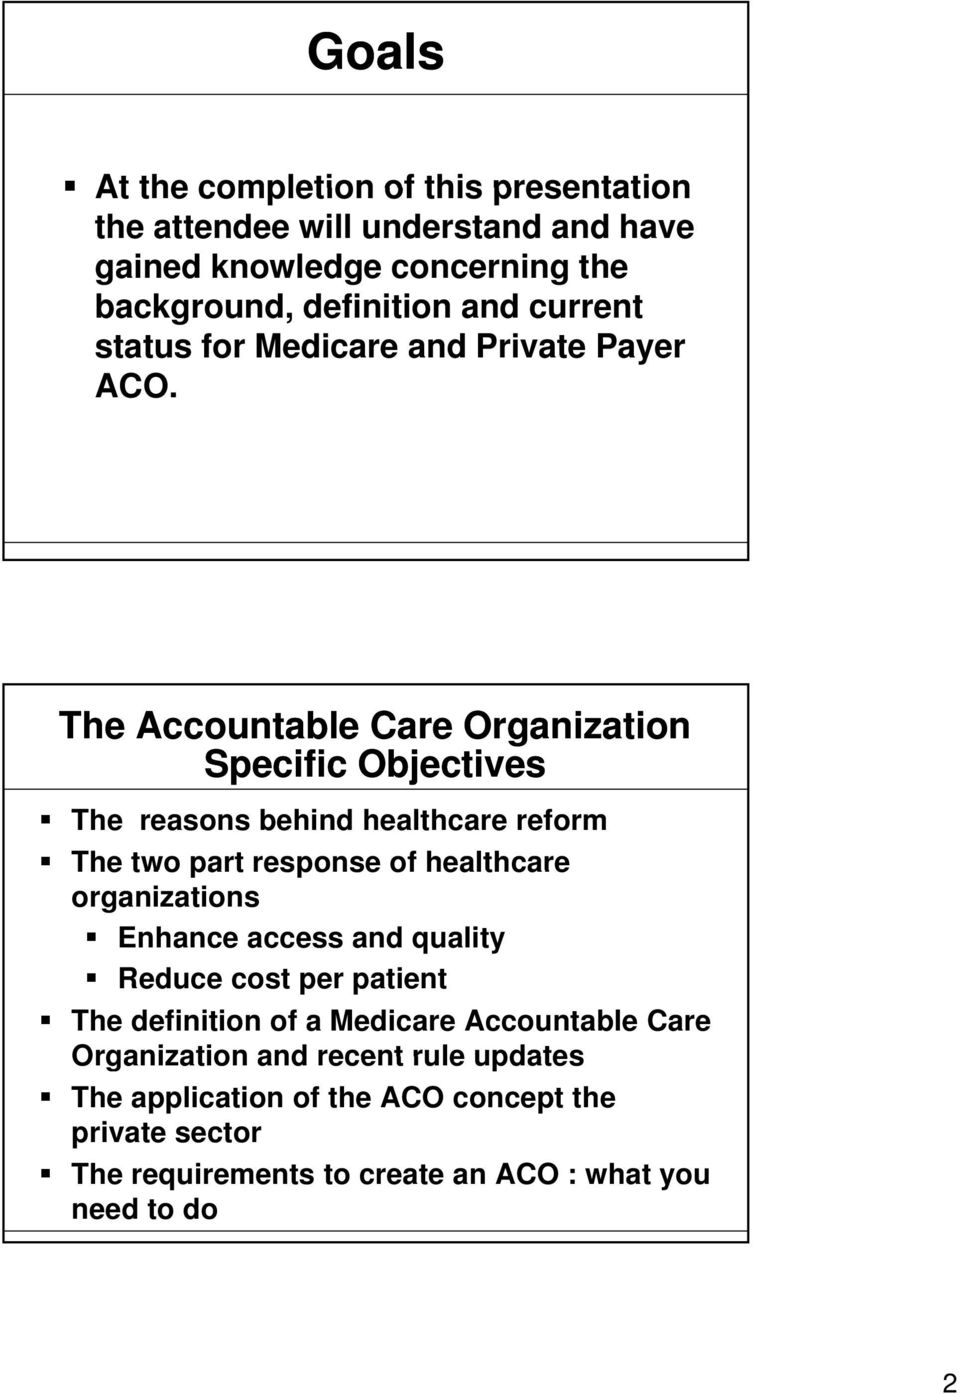 The Accountable Care Organization Specific Objectives The reasons behind healthcare reform The two part response of healthcare organizations